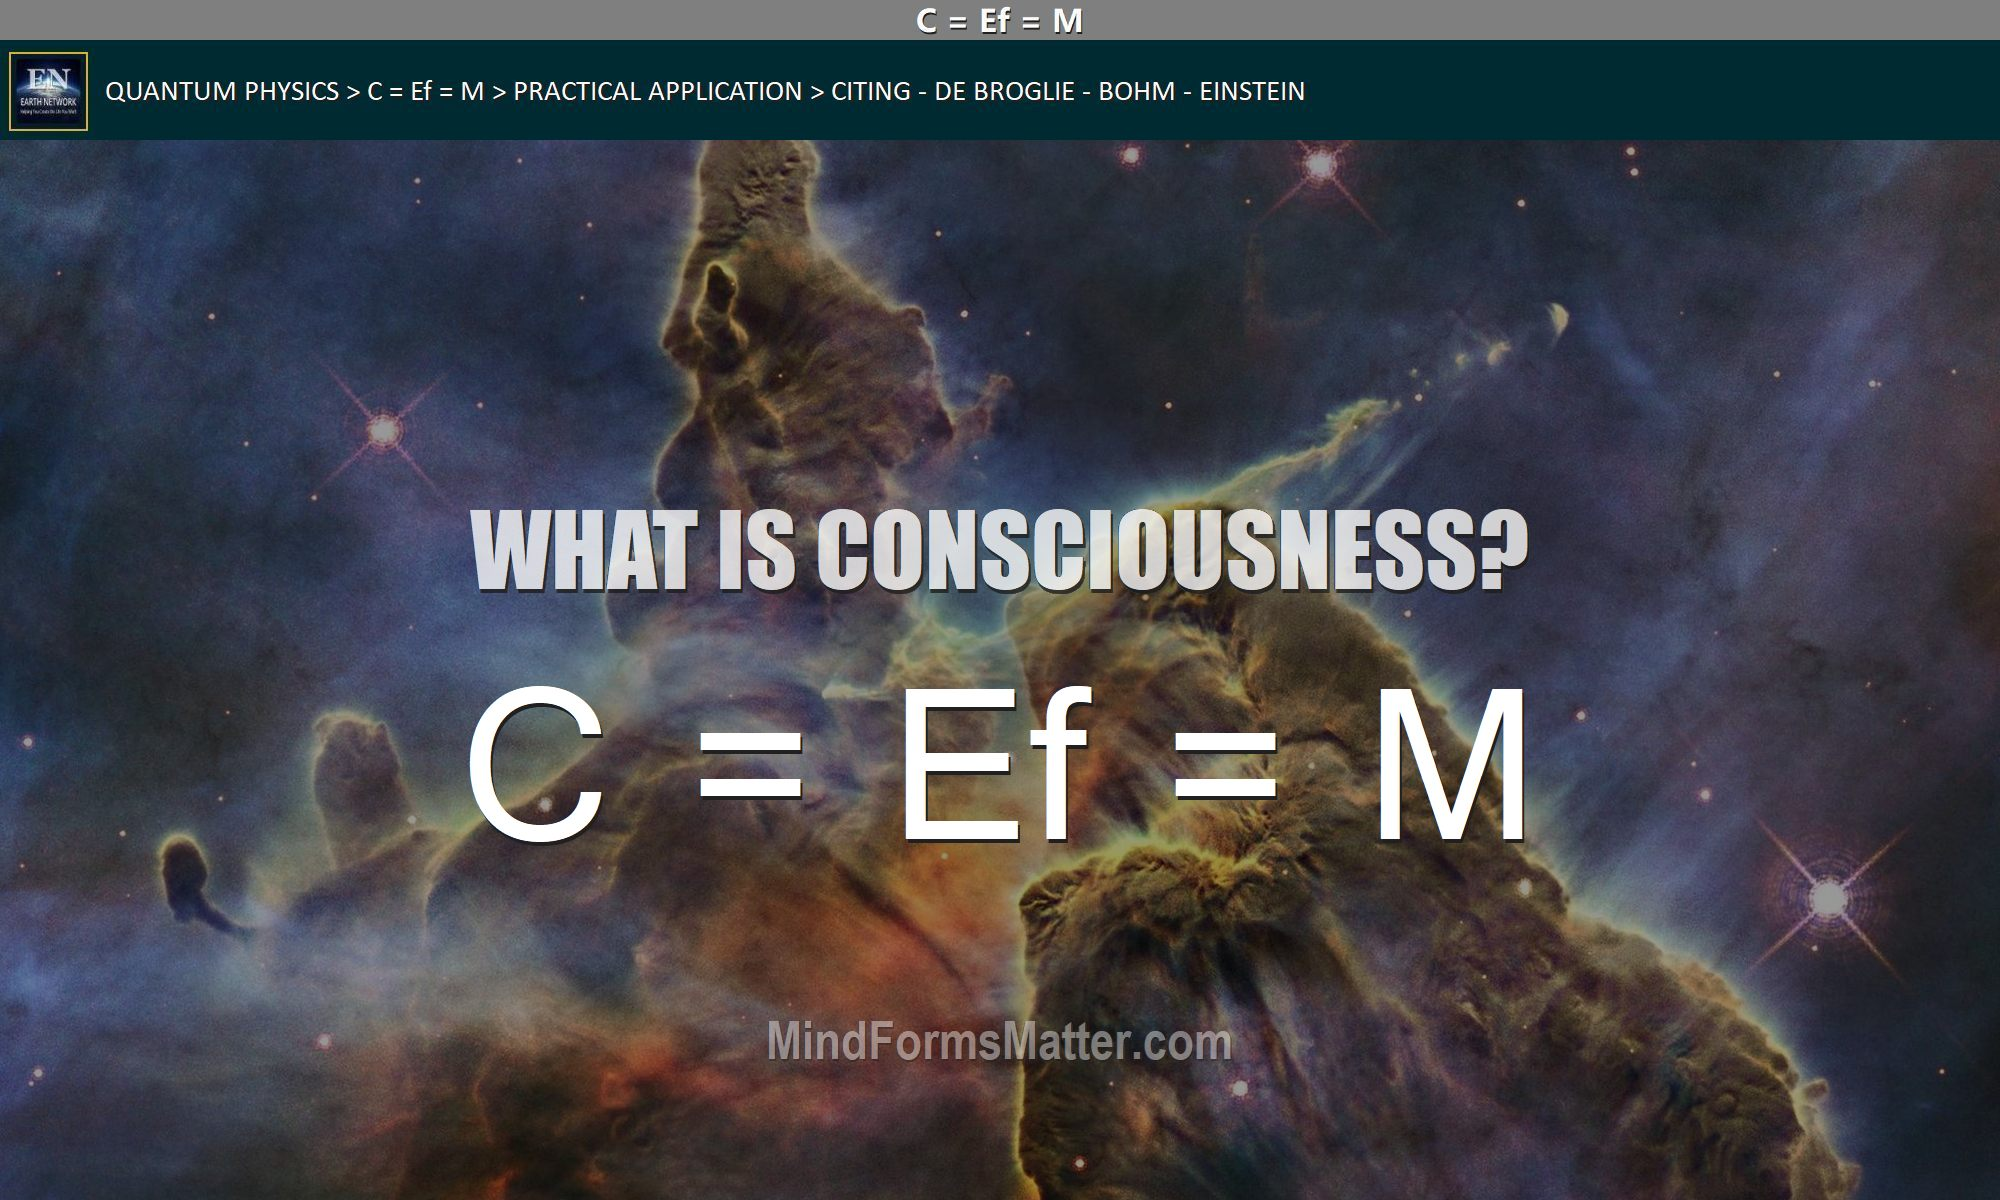 what-is-consciousness-conscious-mind-made-of-electromagnetic-energy-fields-quantum-waves